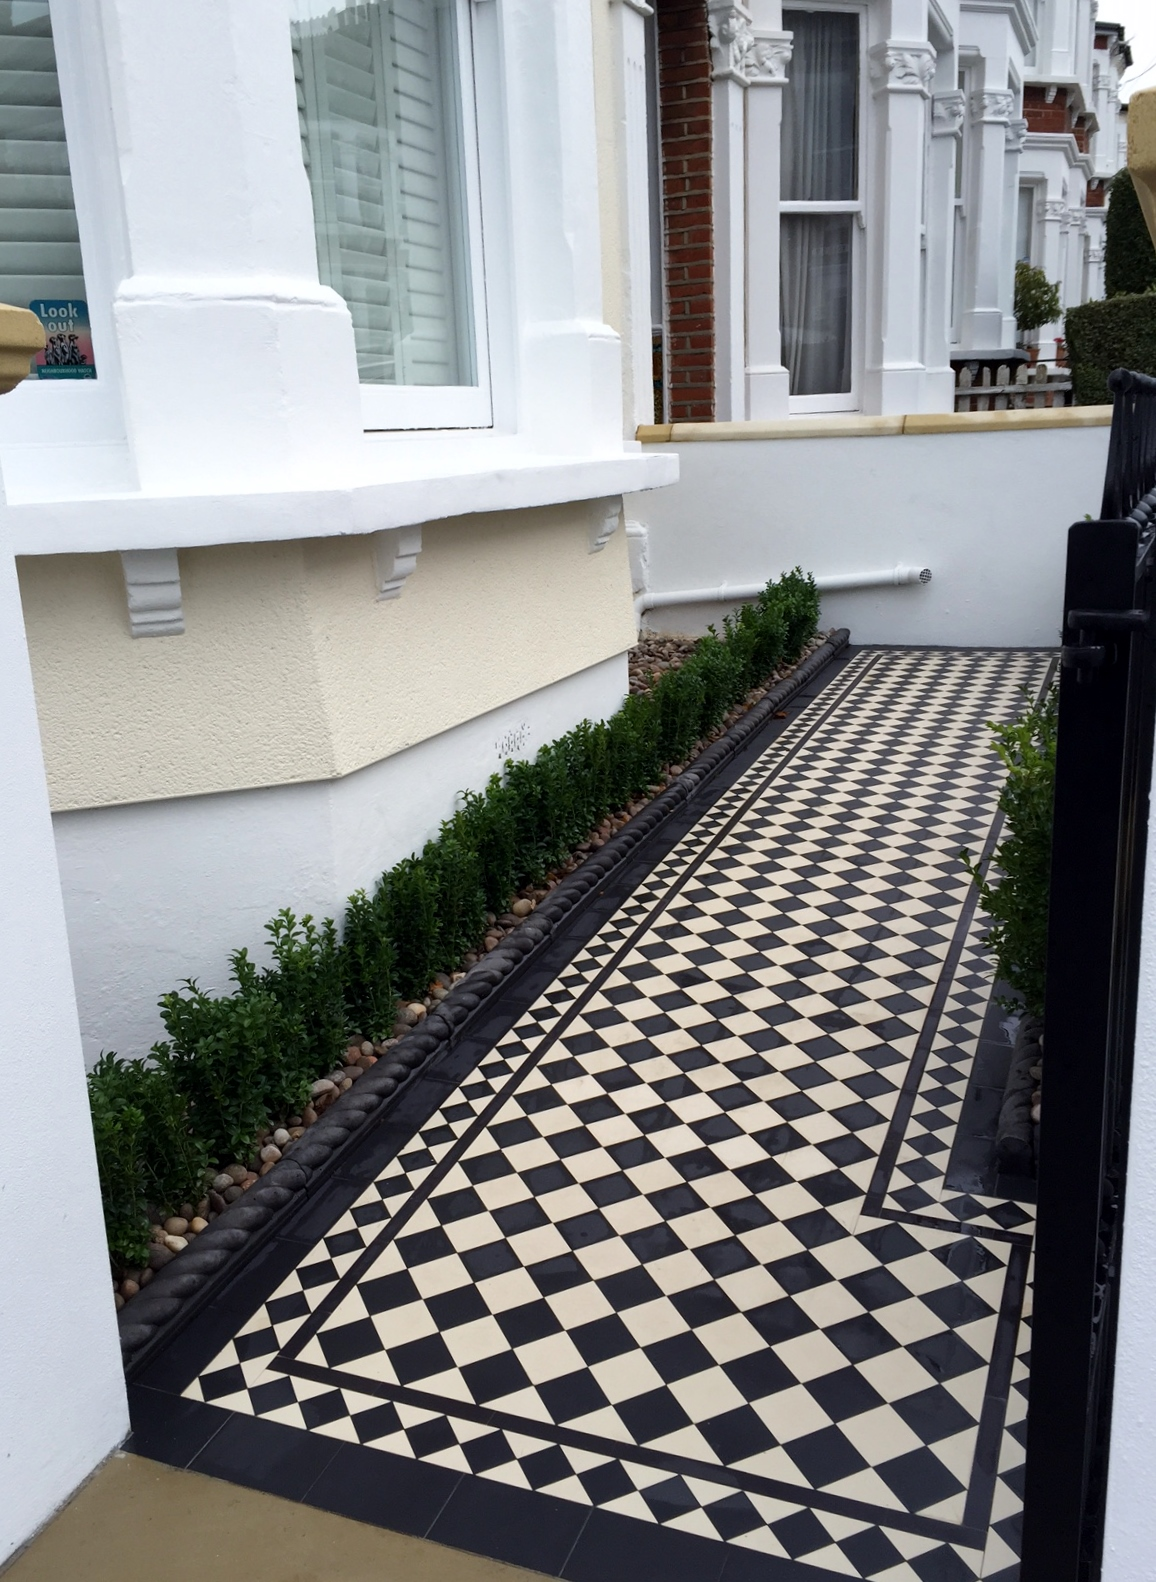 victorian black and white mosaic tile path wall rail gate caps coping balham dulwich battersea clapham  london (8)